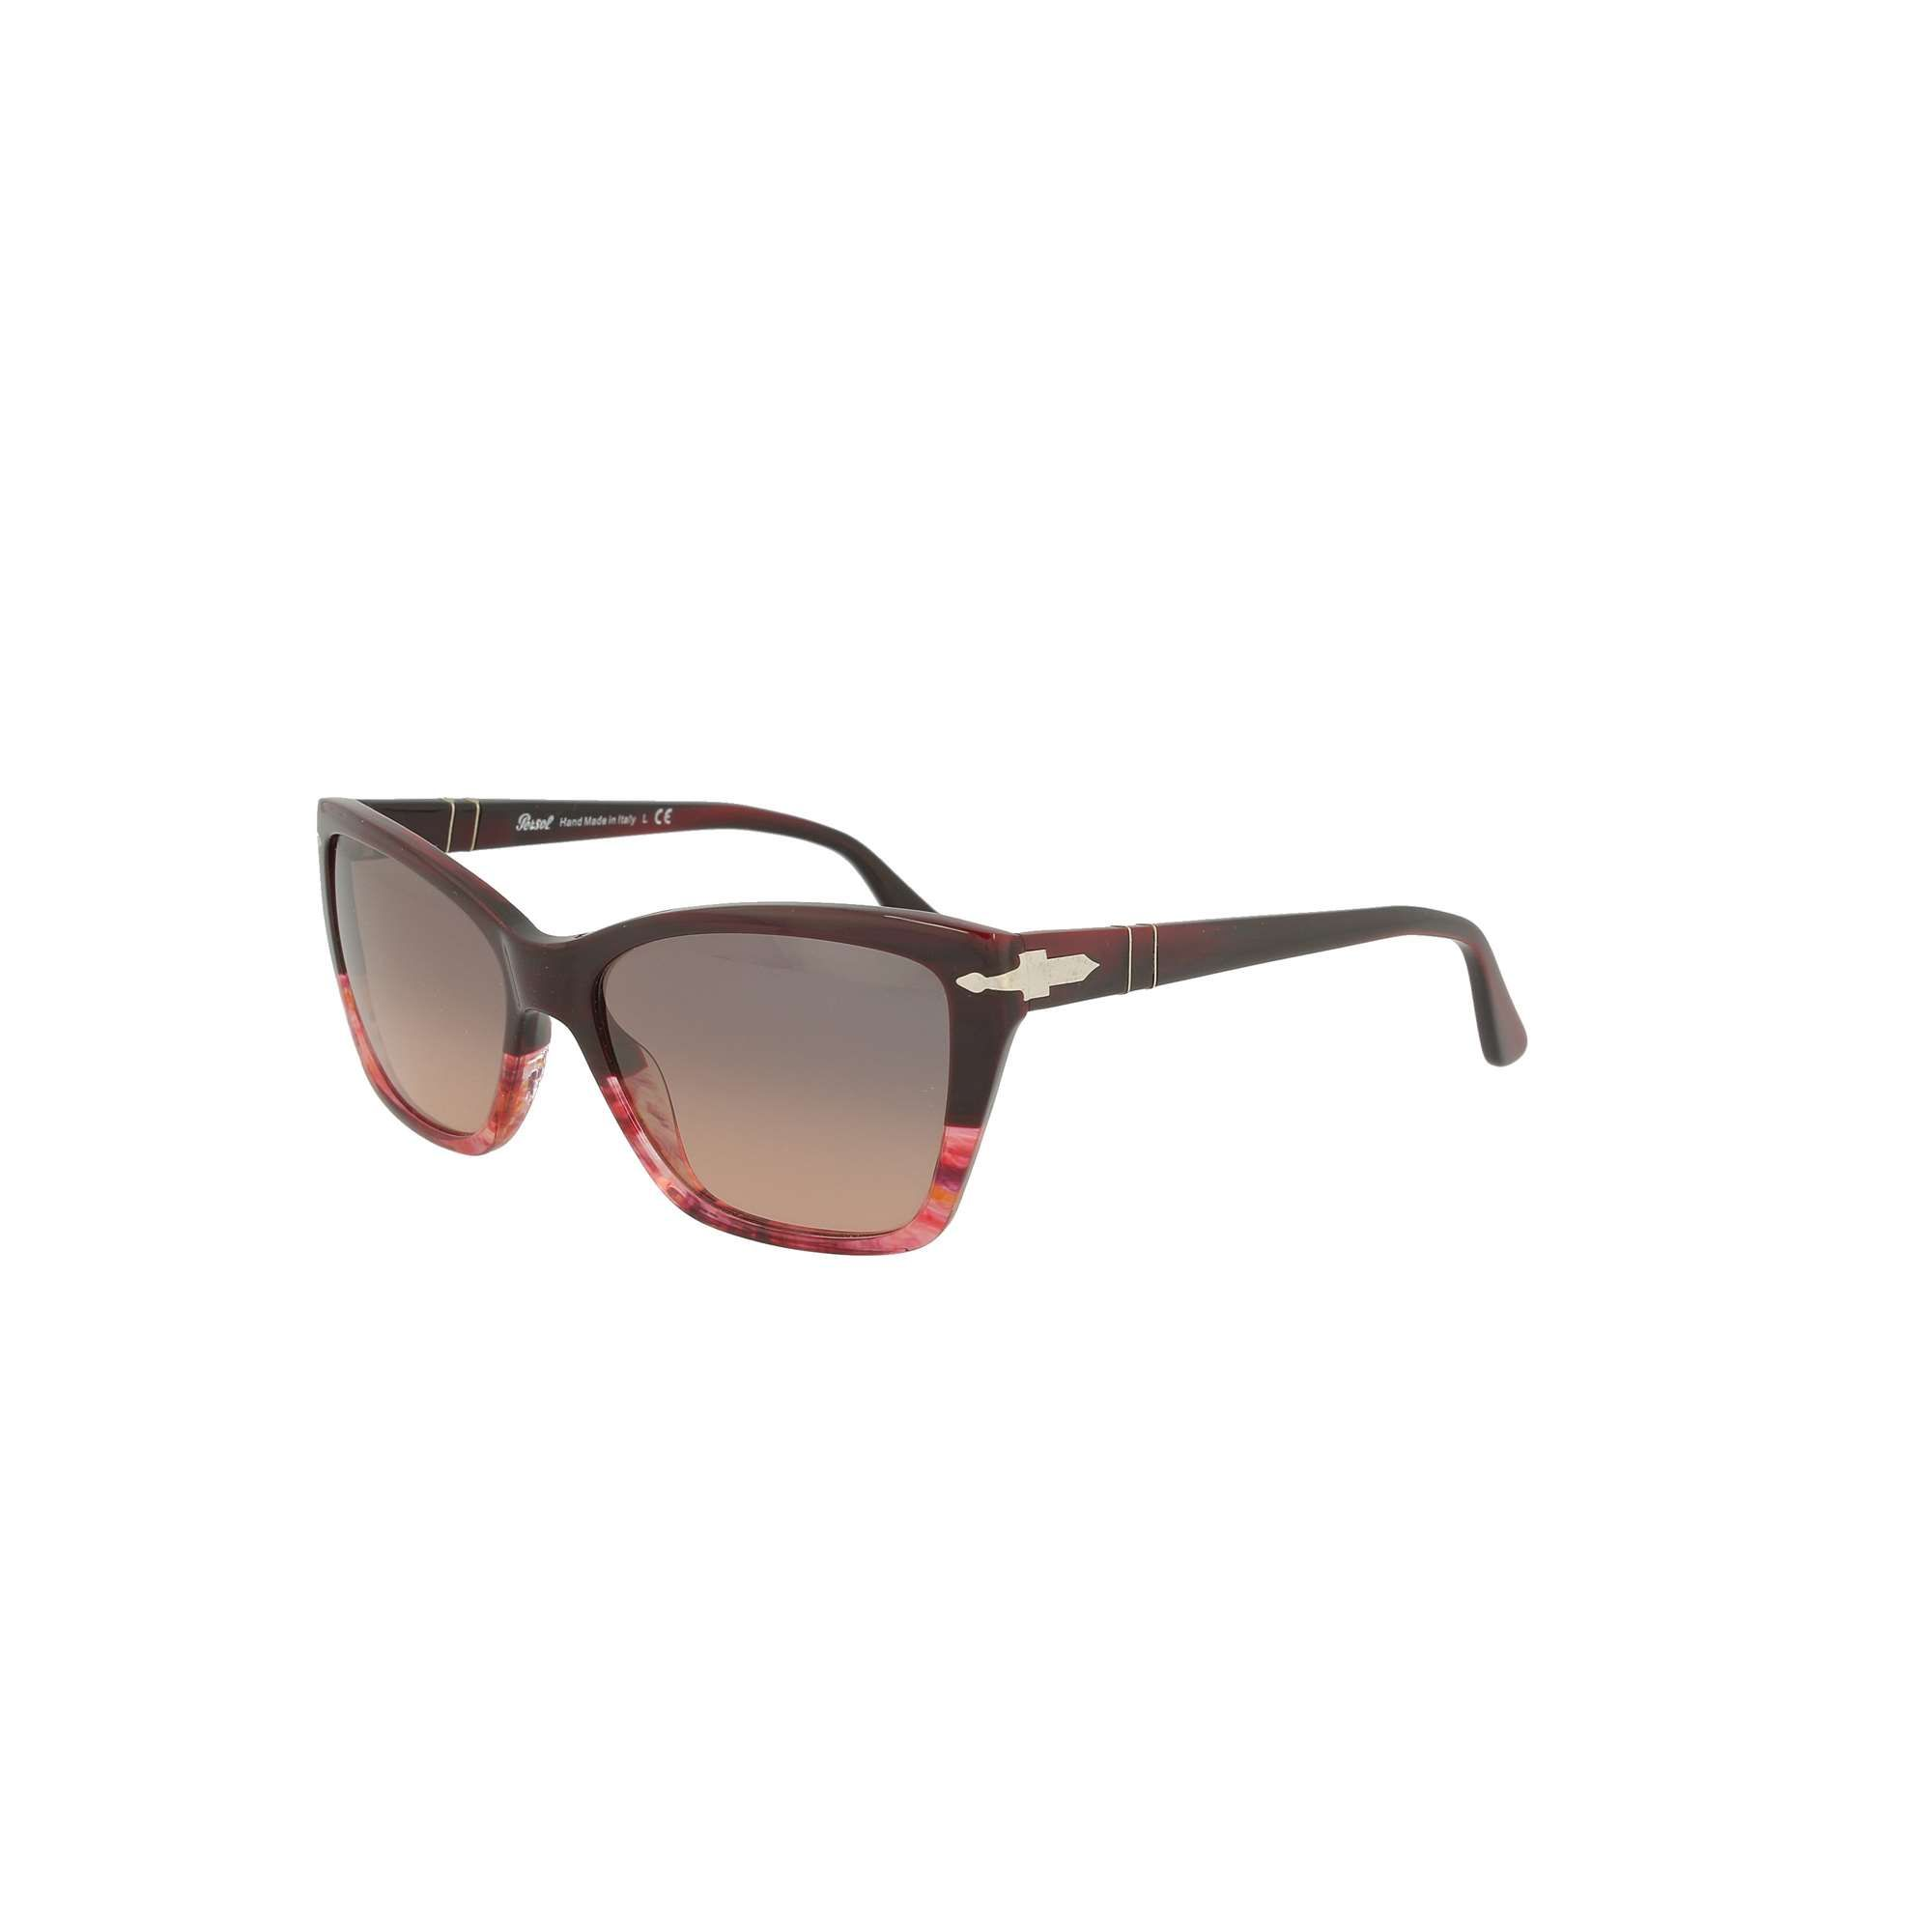 PERSOL Sunglasses PERSOL WOMEN'S PINK METAL SUNGLASSES